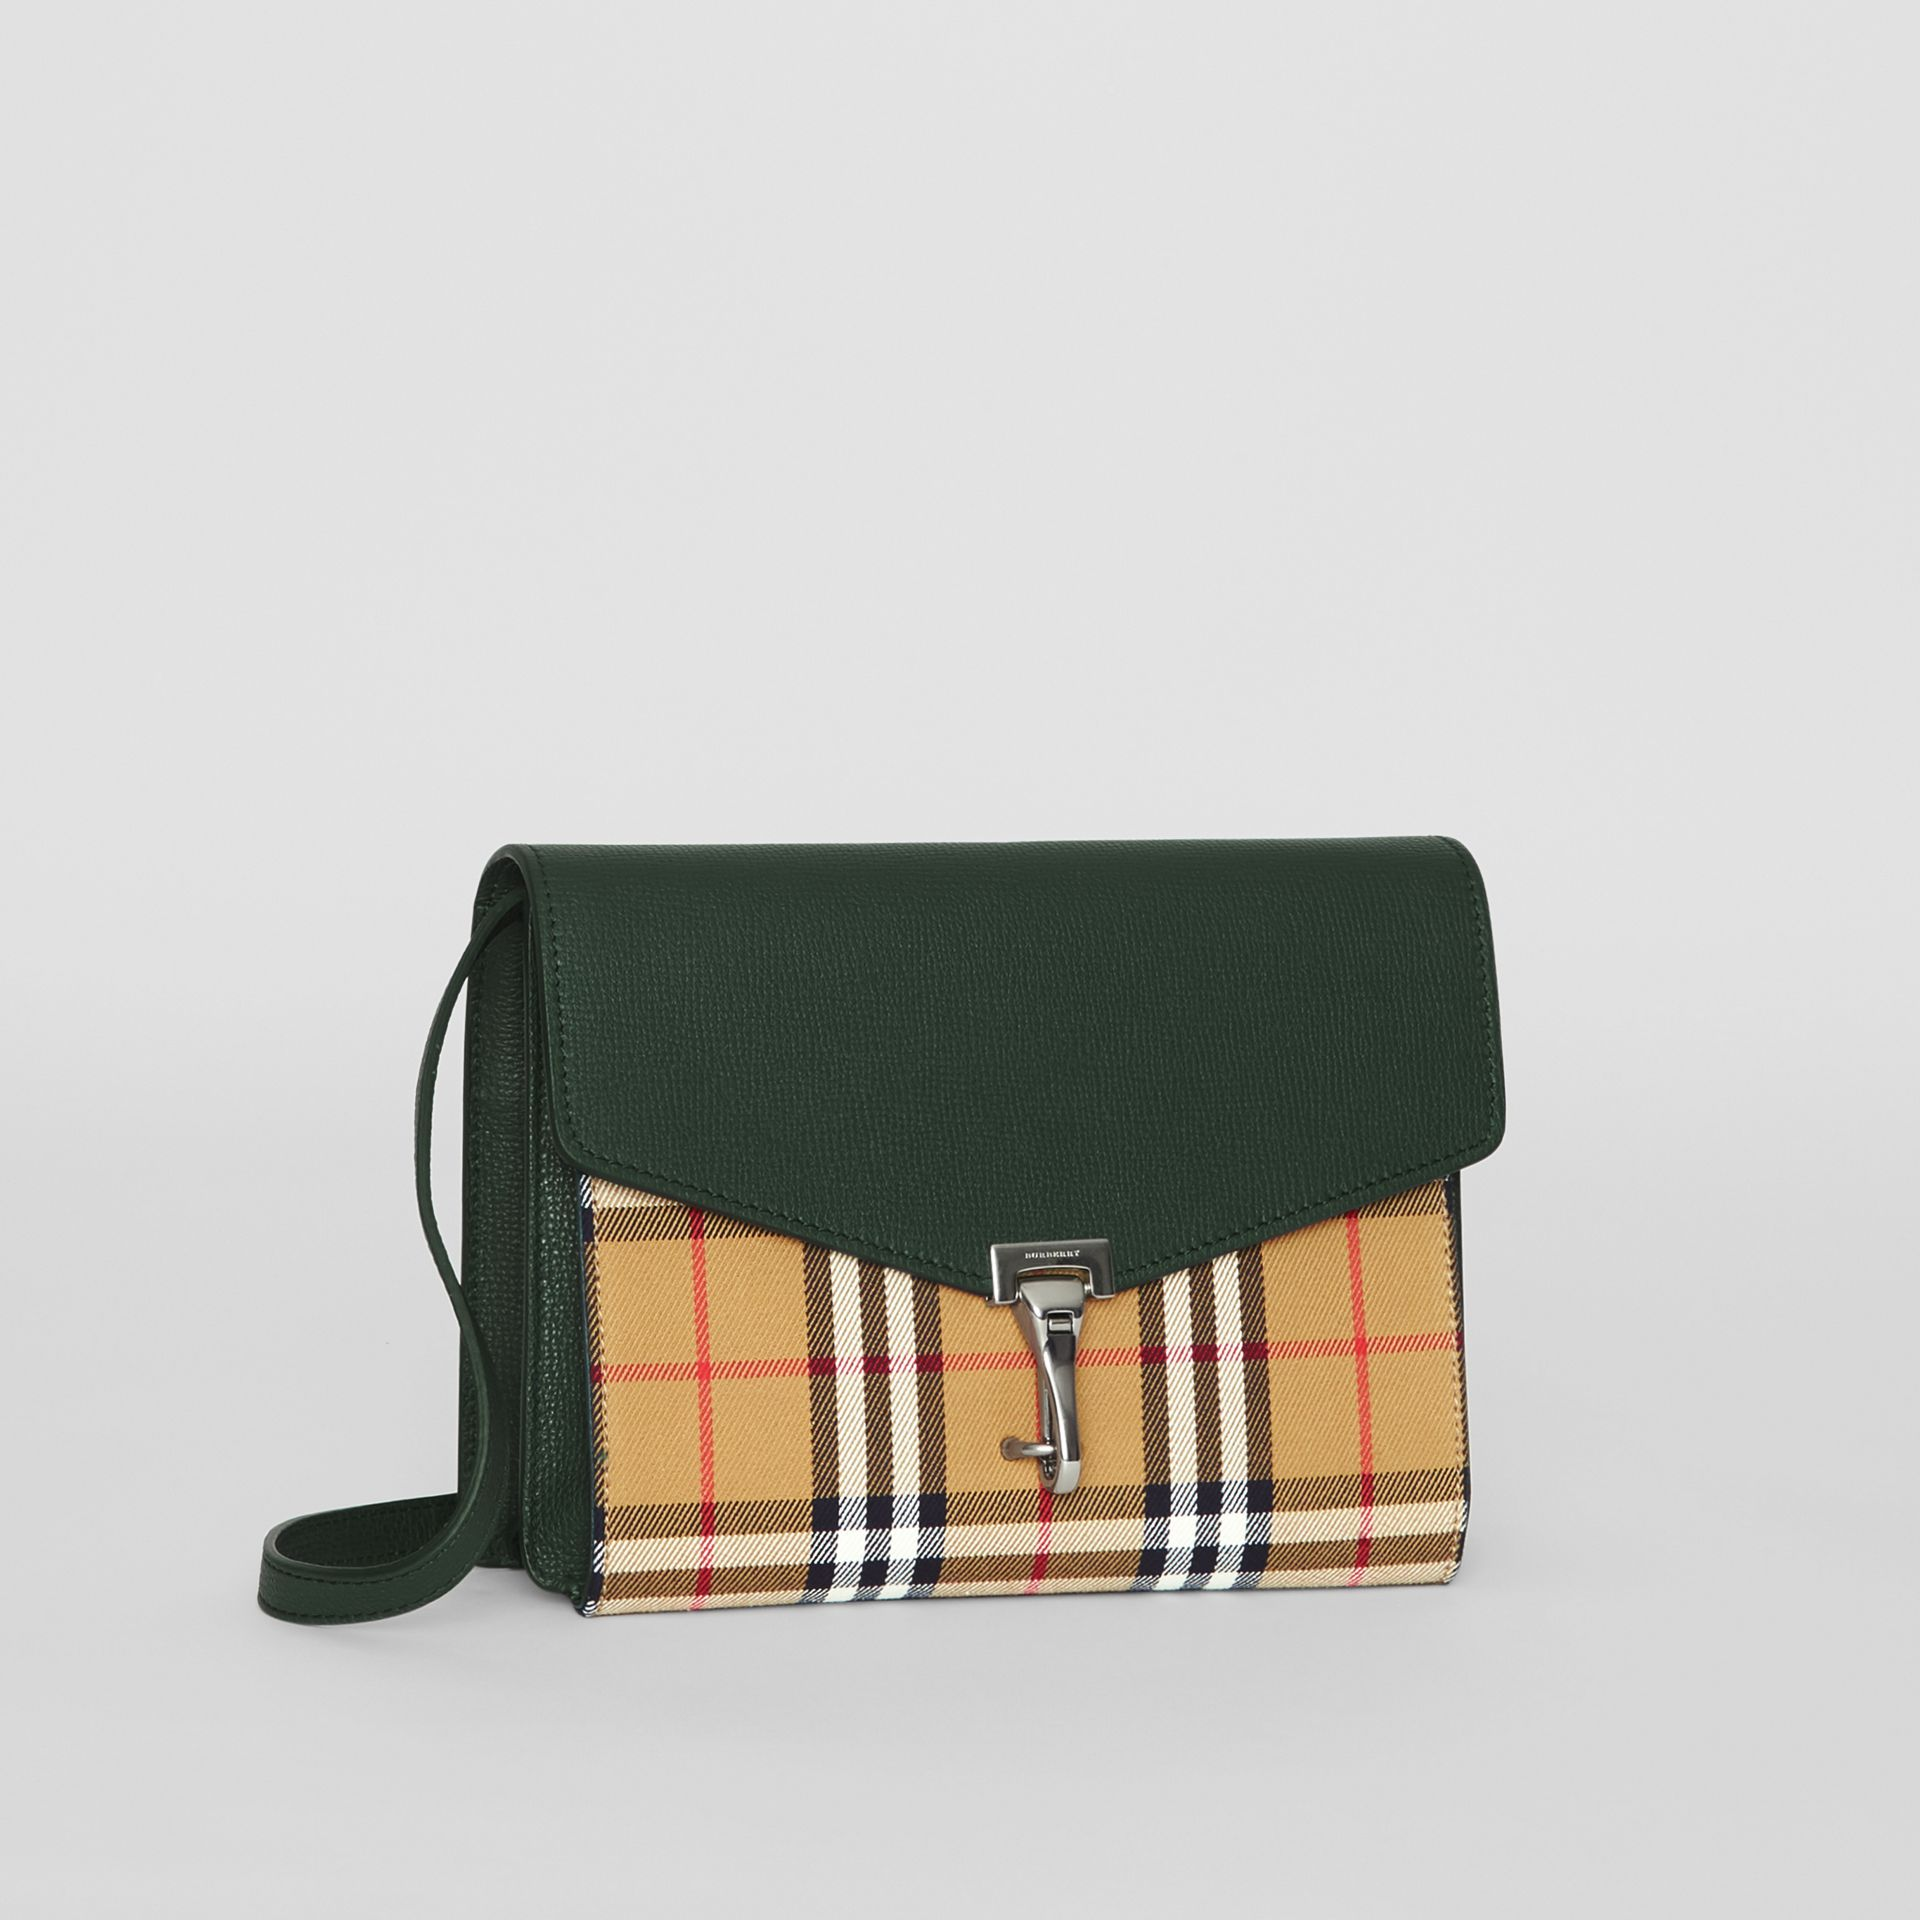 Small Vintage Check and Leather Crossbody Bag in Green - Women | Burberry United States - gallery image 6